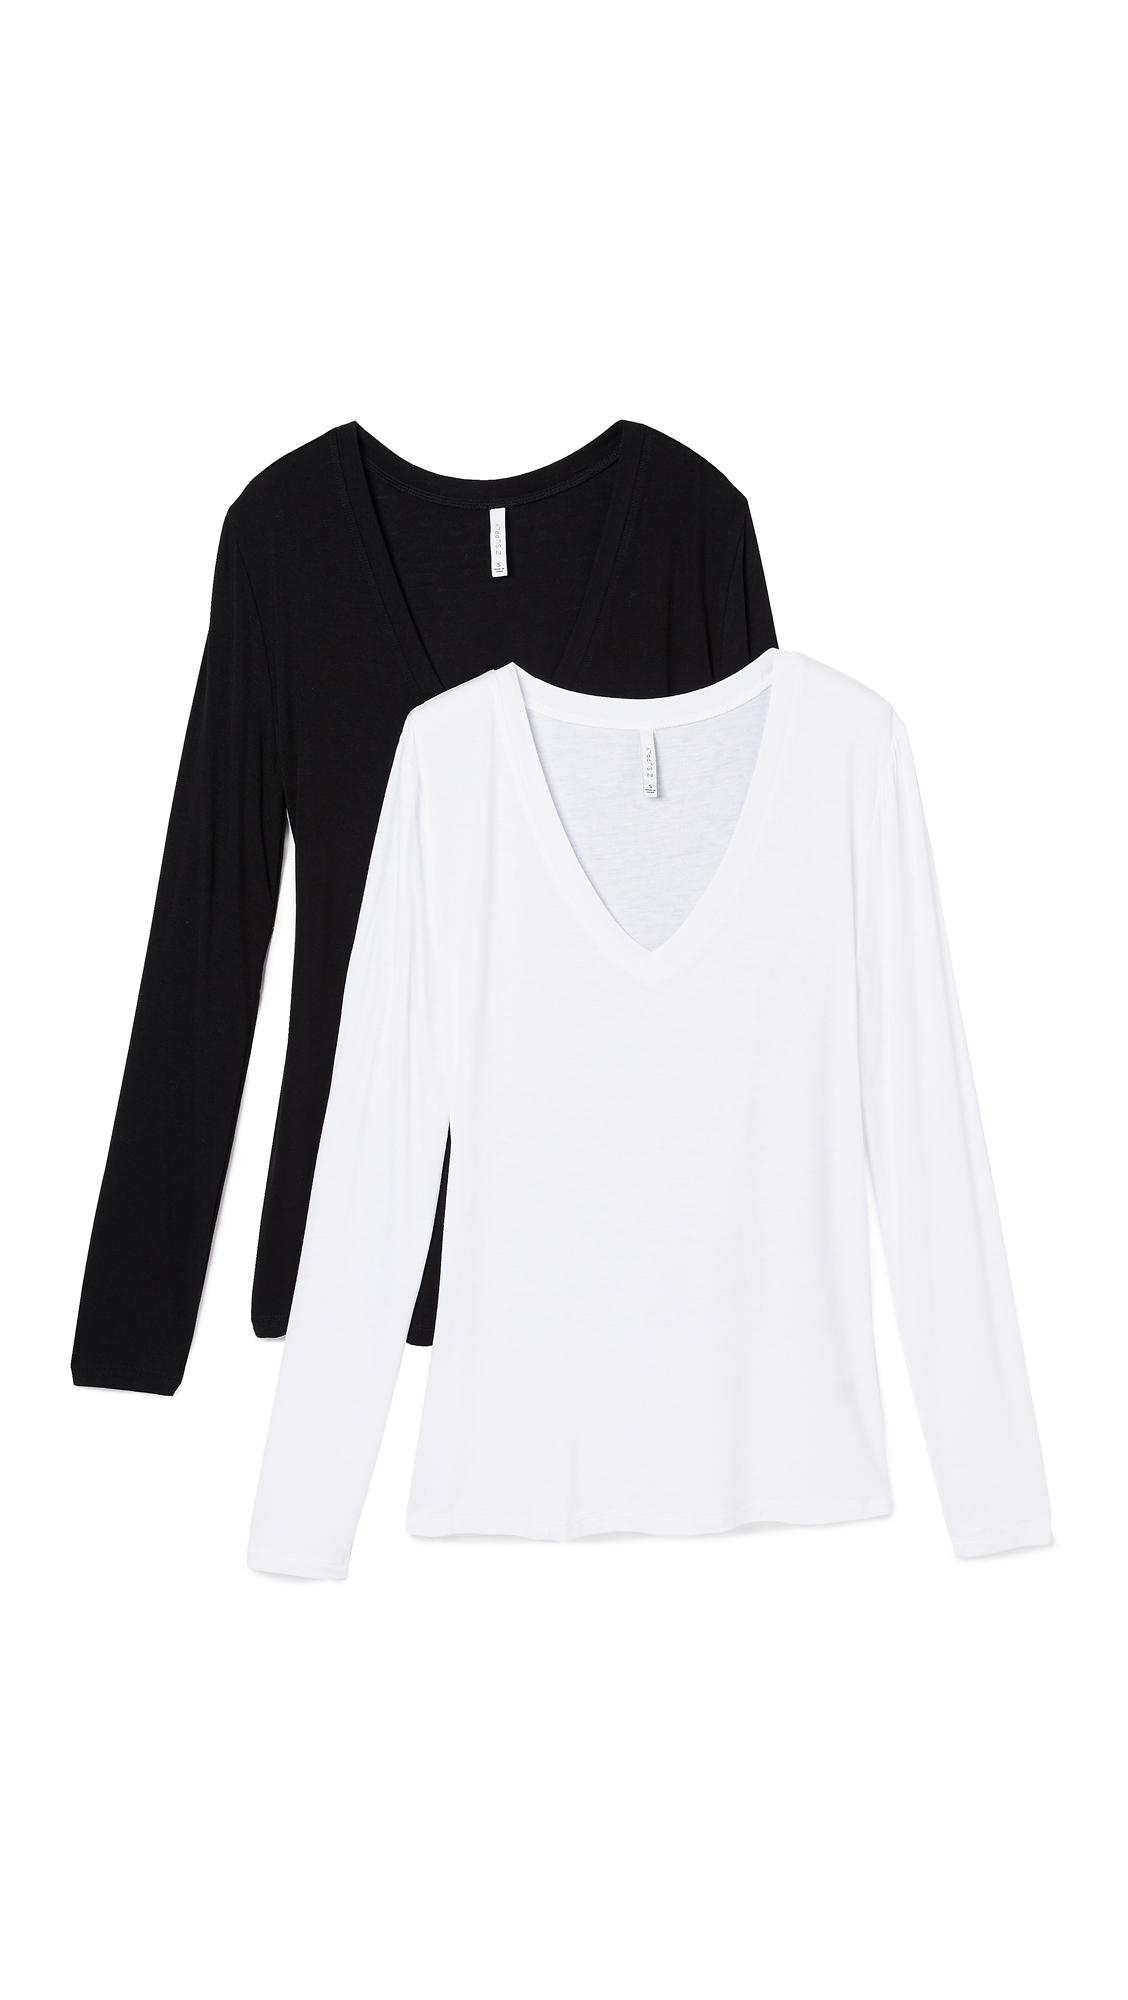 Z Supply Fitted Long Sleeve V Neck Tee - 2 Pack In Black/White